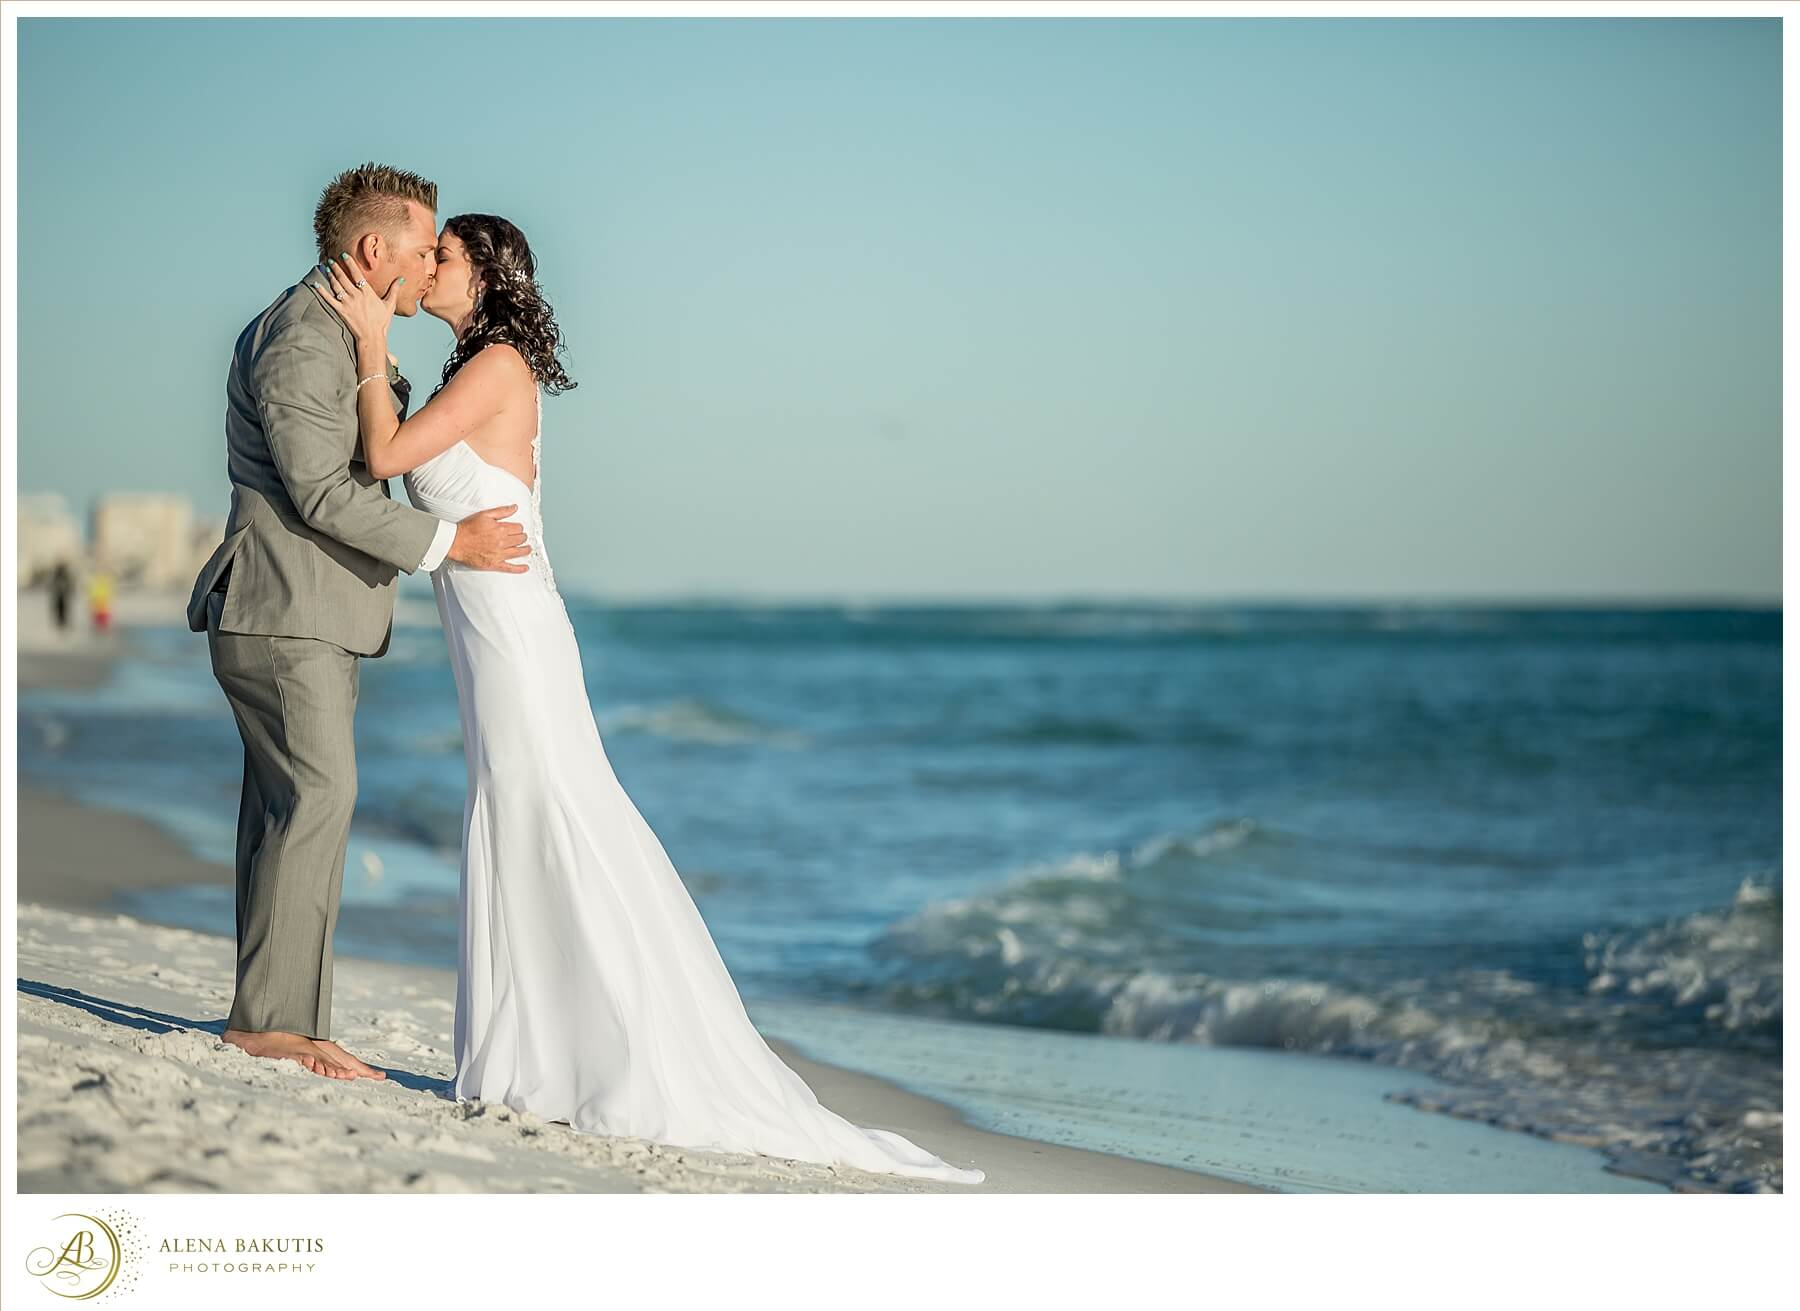 destin beach weddings Alena Bakutis Photography - Amber Brandon-451_WEB